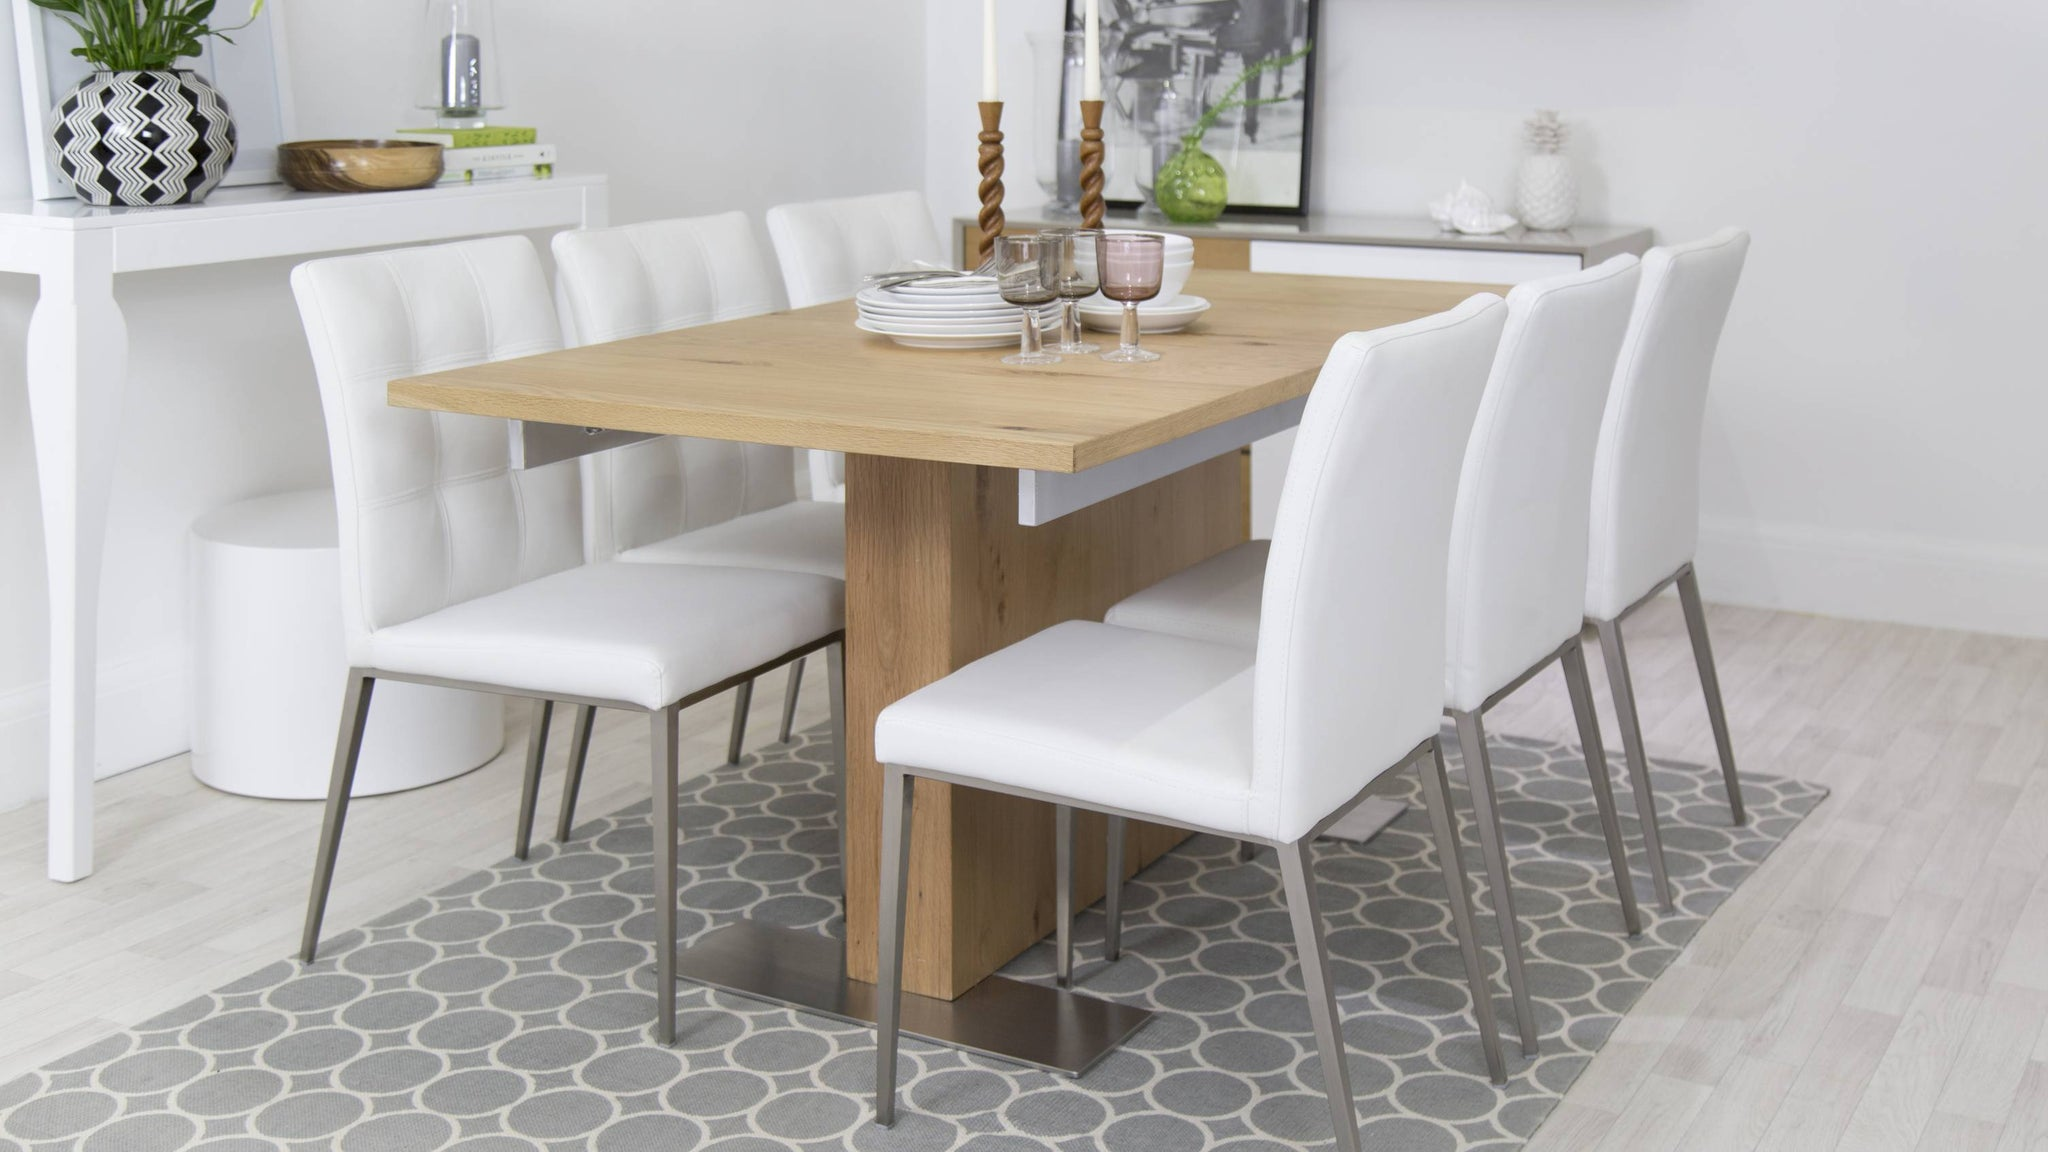 Stylish and Contemporary Extending Dining Set with White Chairs